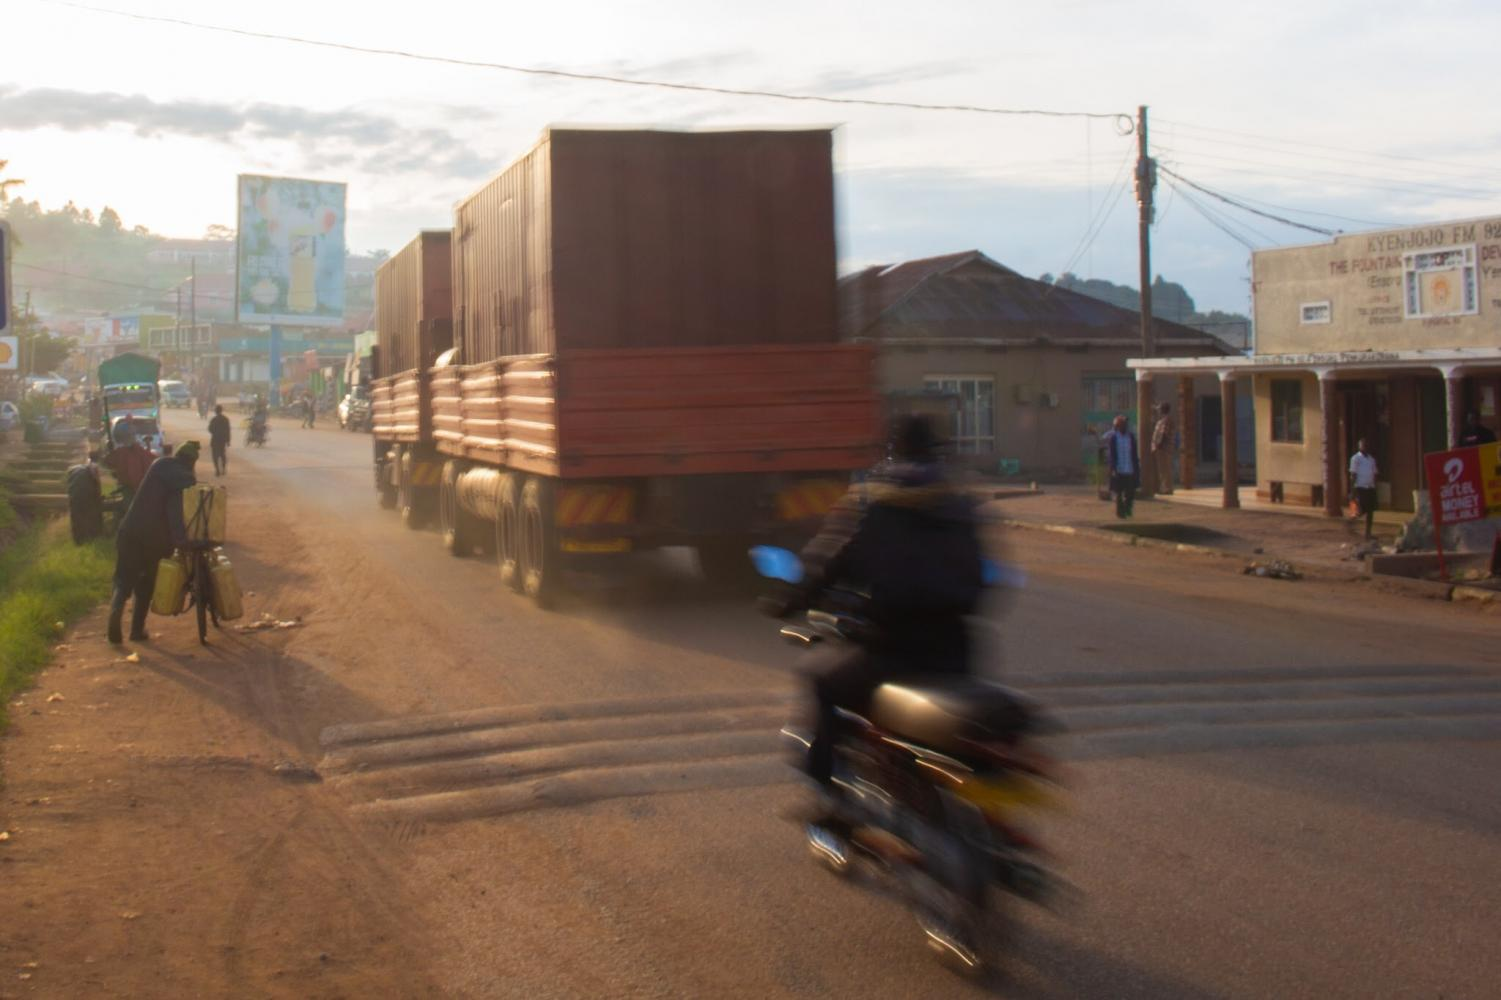 The+most+common+form+of+transportation+in+Uganda+is+by+motorbike+%28boda+boda%29